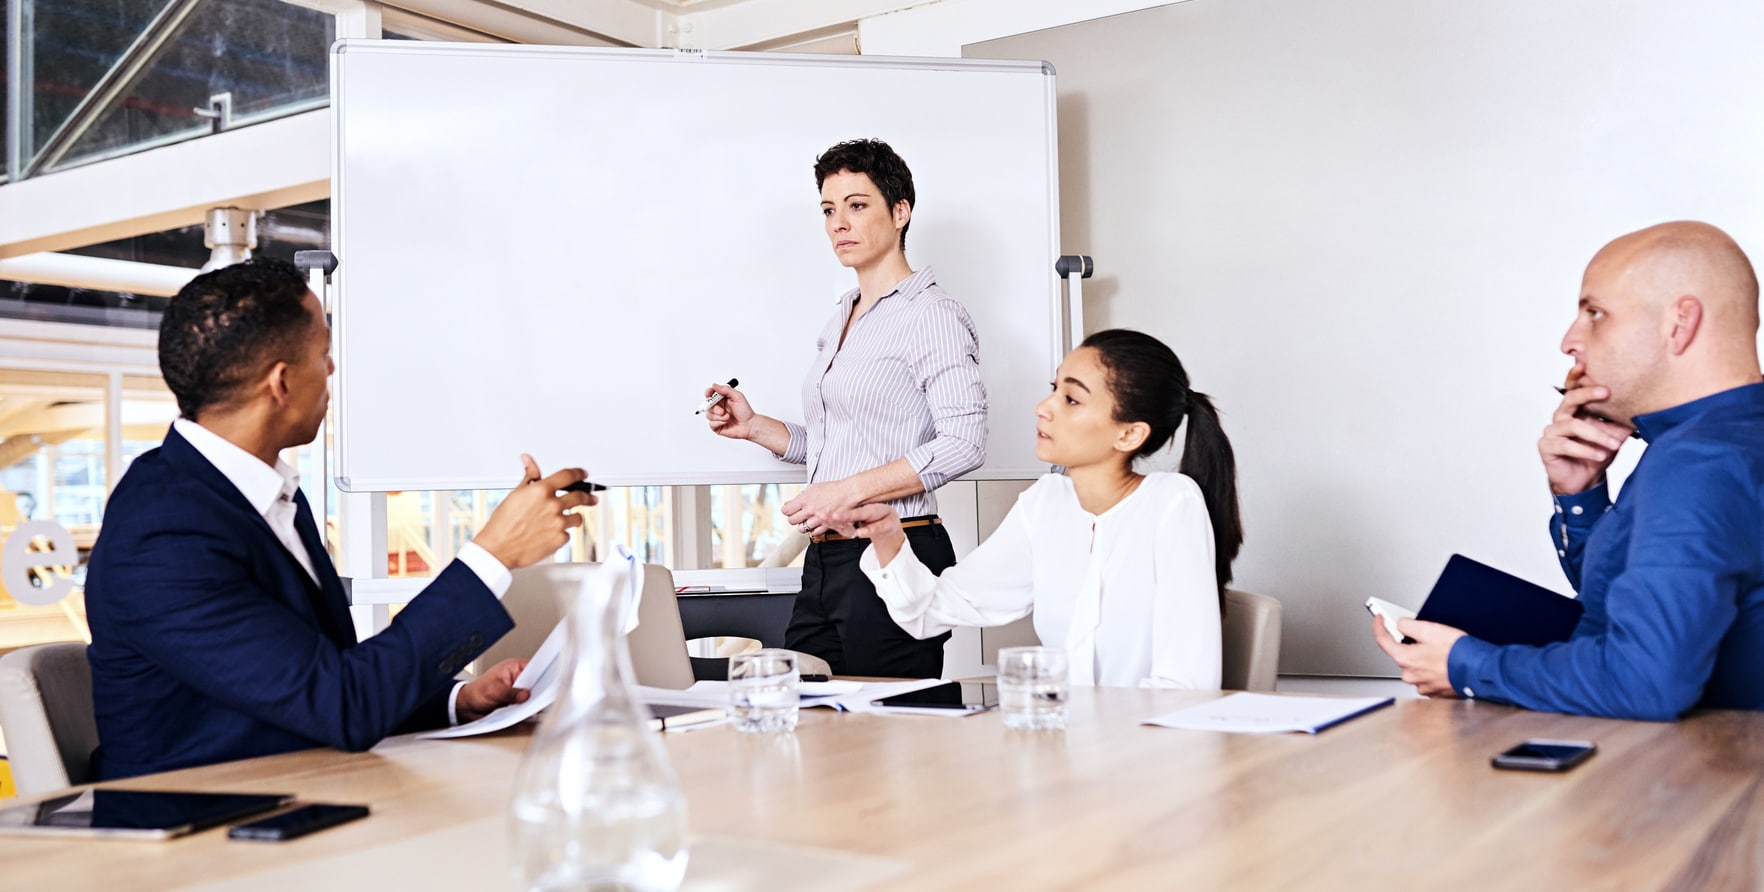 Mature business woman paying attention to a fellow colleague as he answers a question that the businesswoman asked with the other two board members paying close attention to their partners.